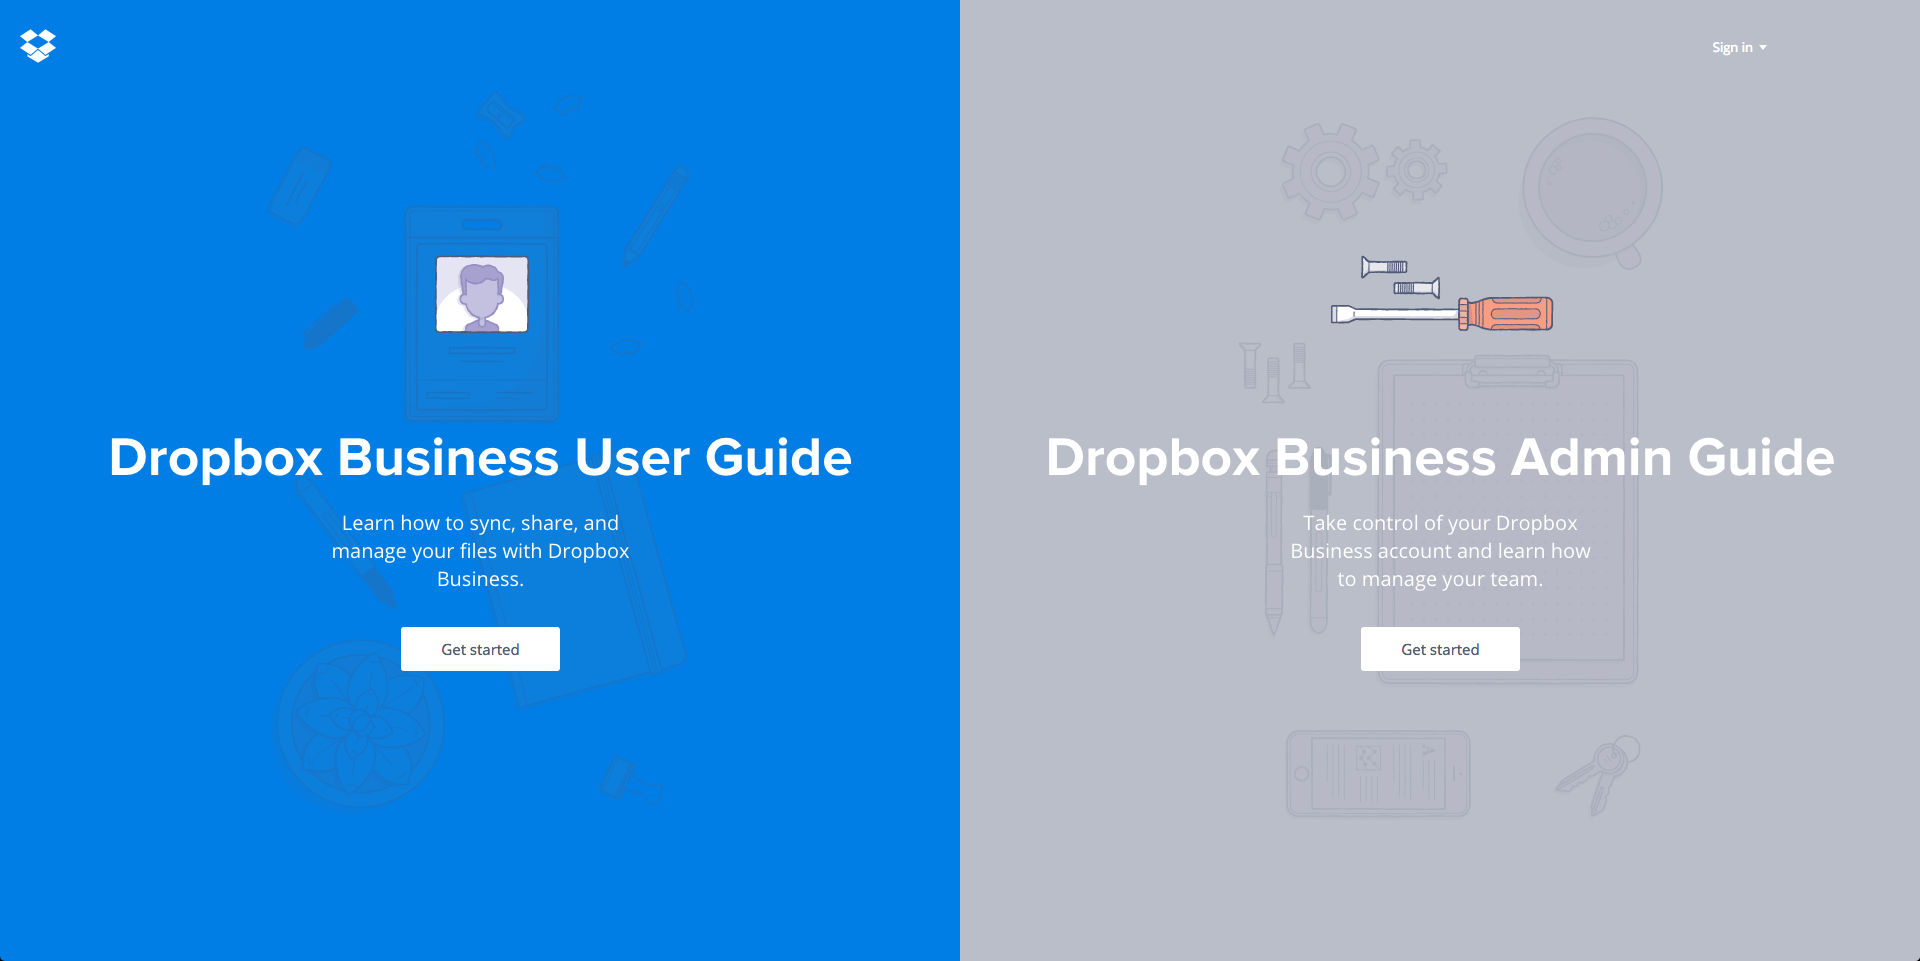 Dropbox Business User/Admin Guide - Weekly Roundup: Apple's Date Glitch, Samsung ditched, and more